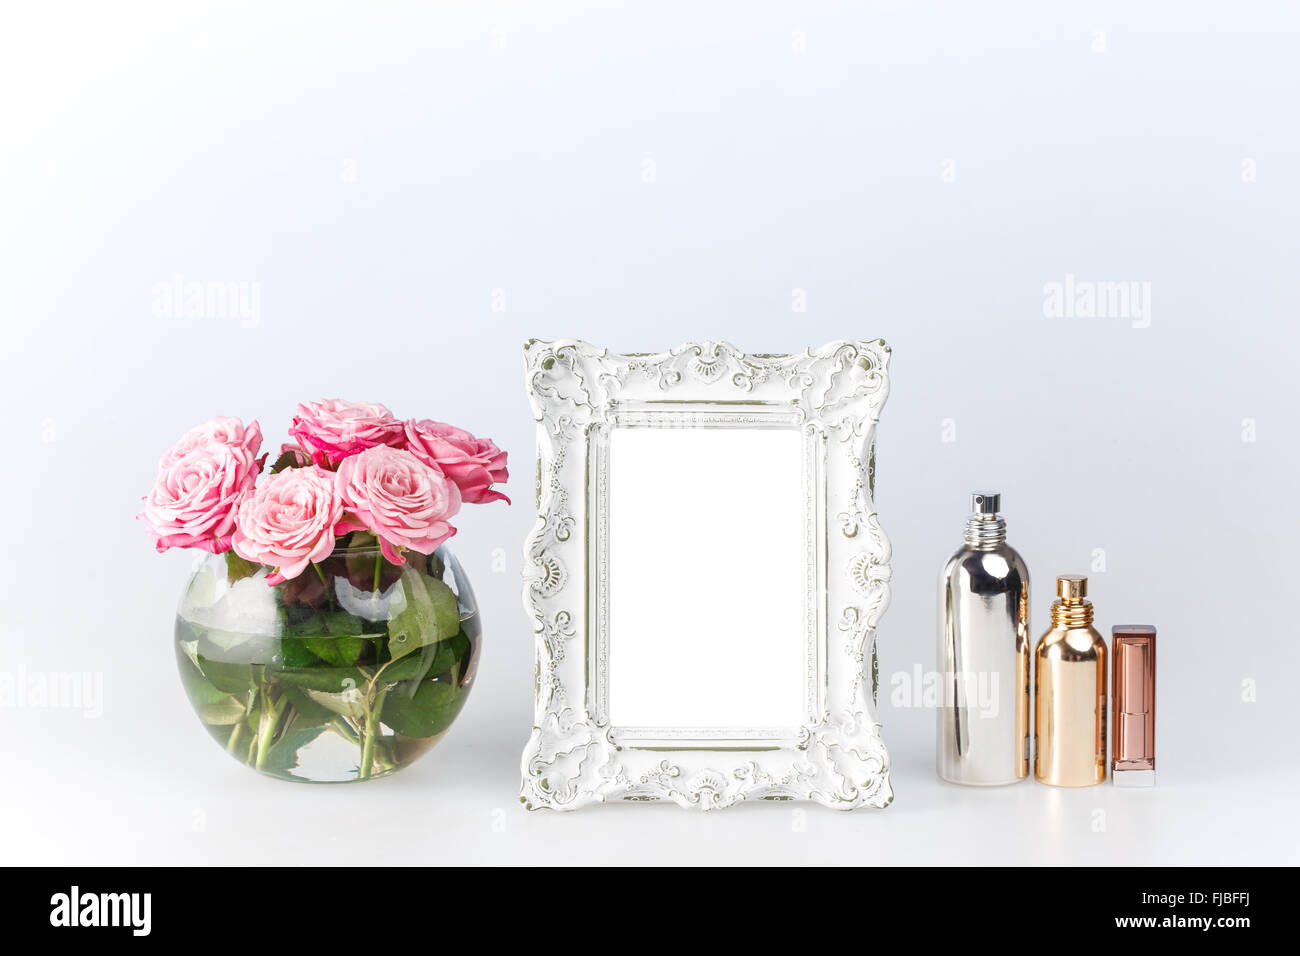 Flowers Vase And Vintage White Picture Frame And Perfume On White